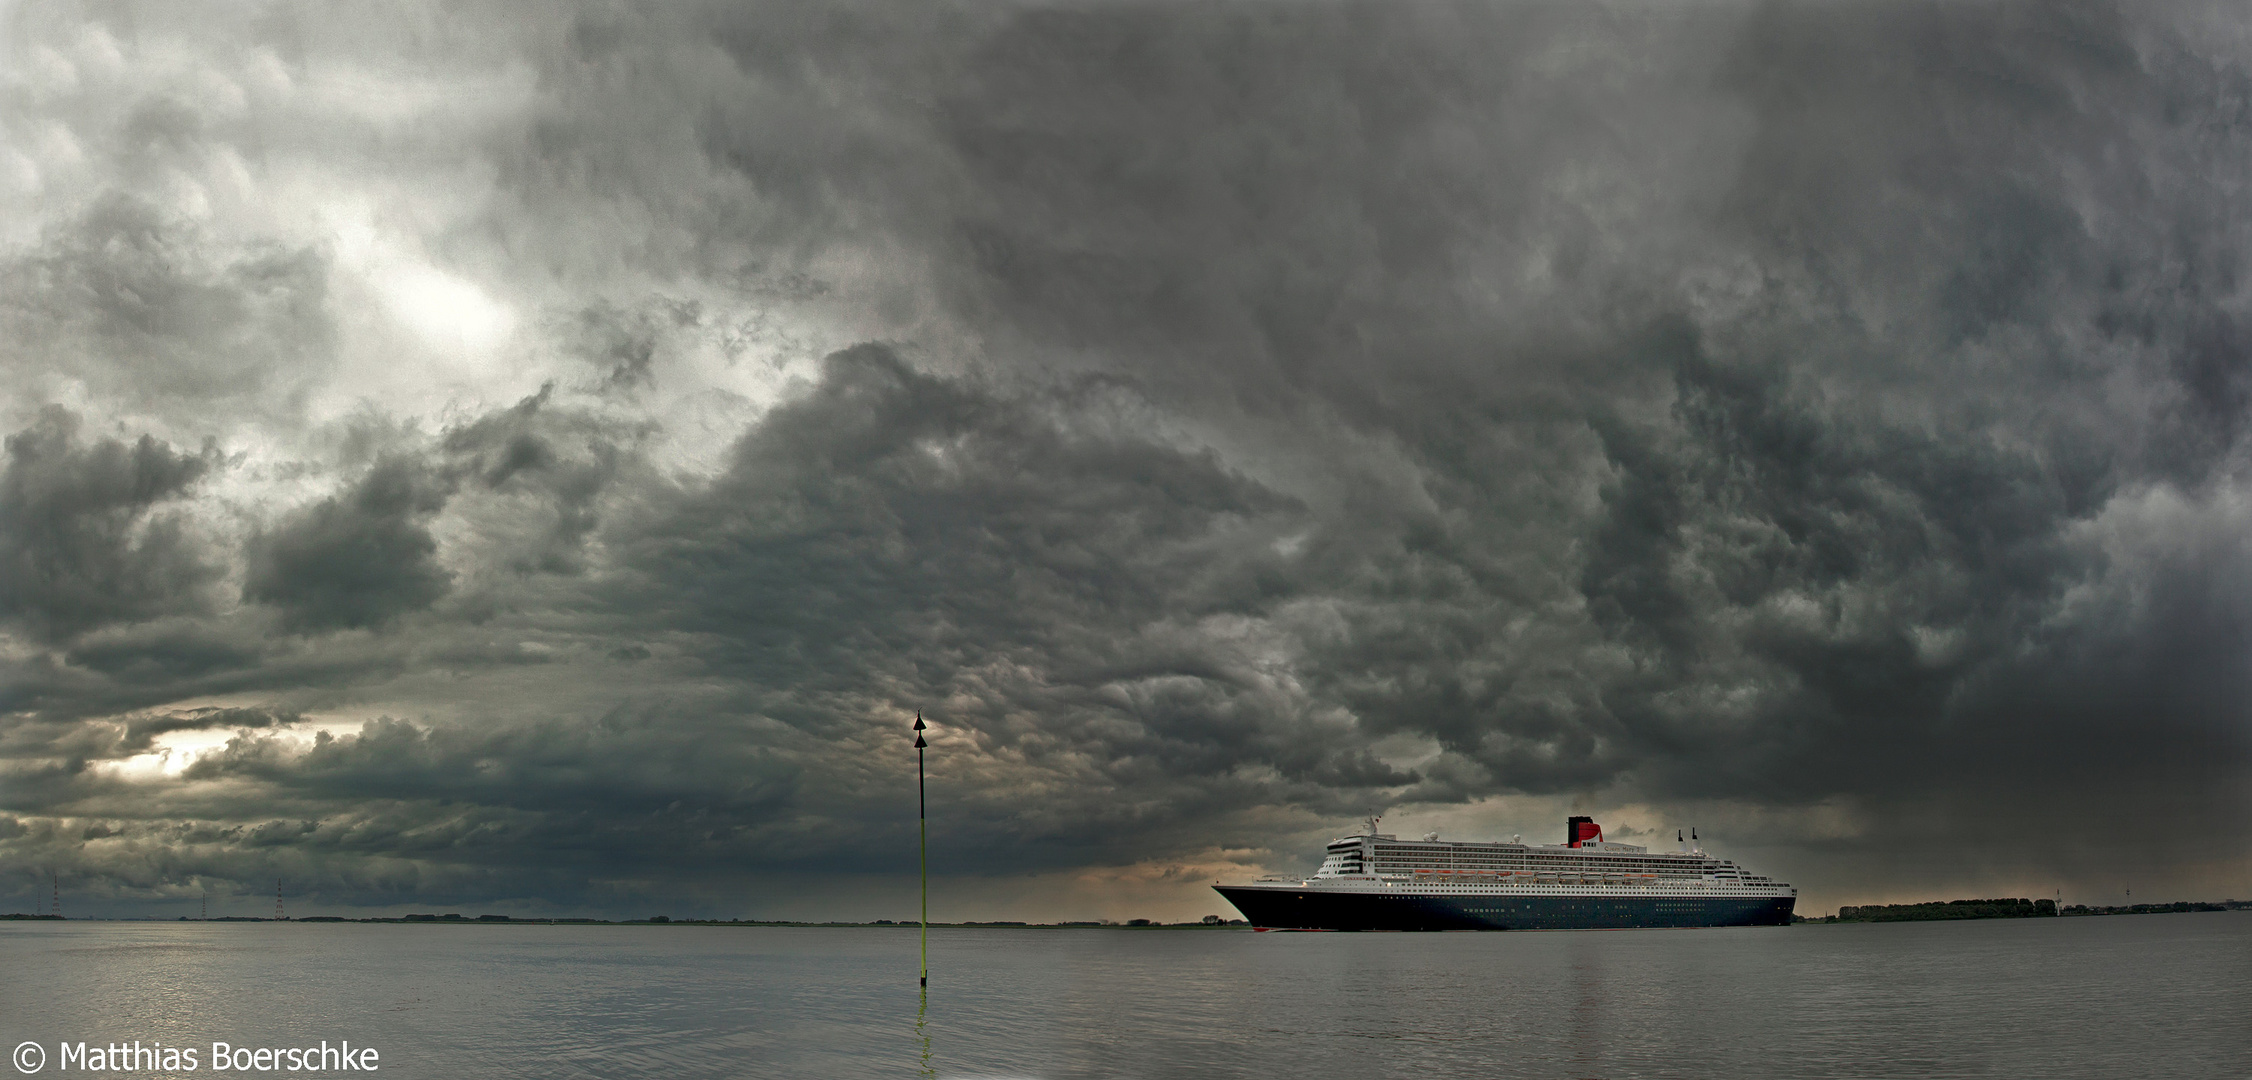 Queen Mary II Special!